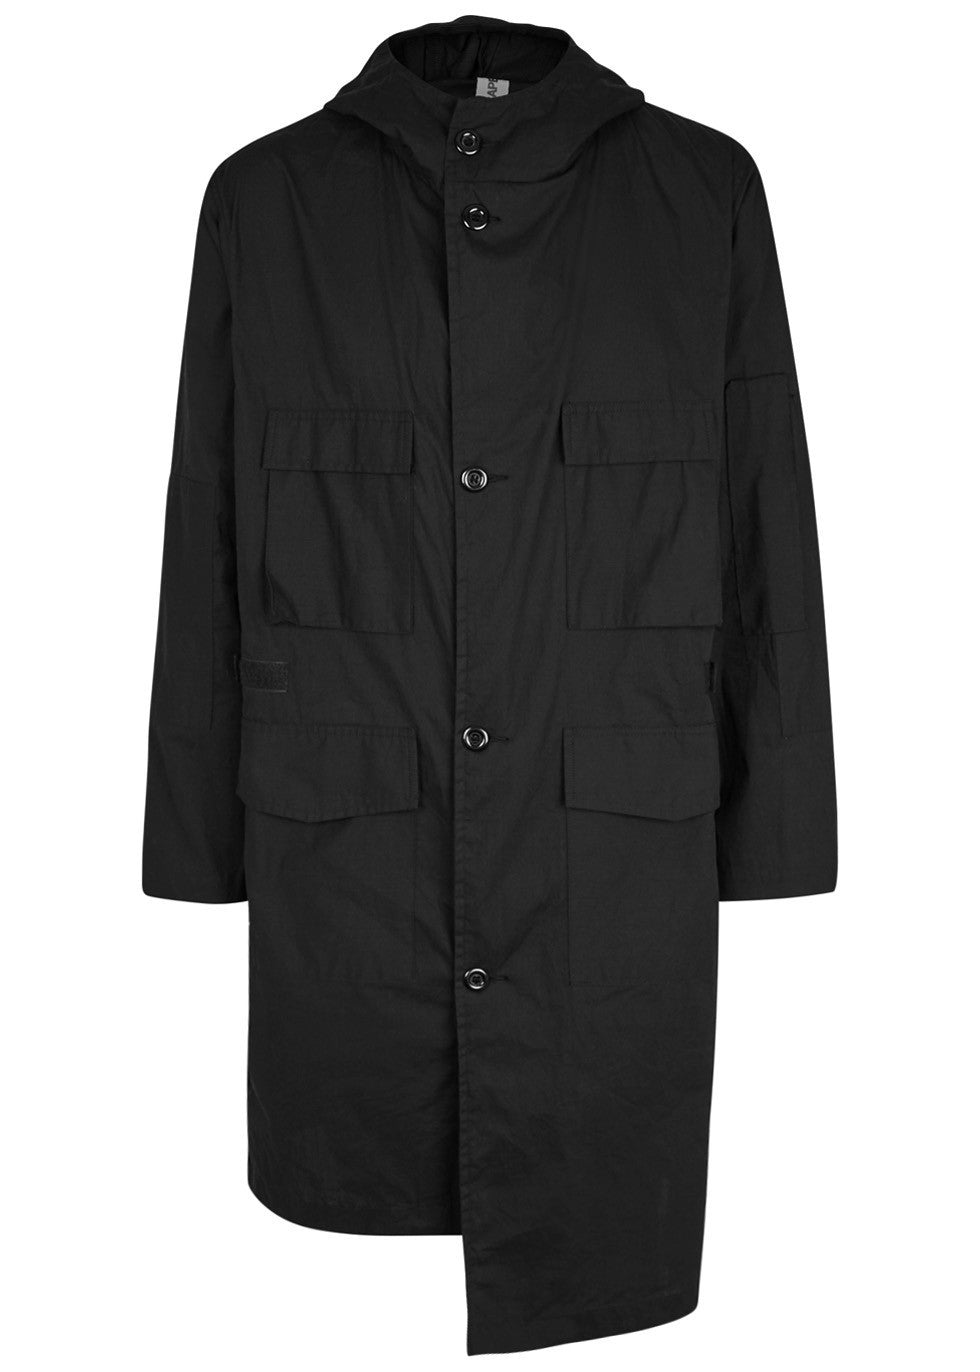 Legacy tailored parka - low stock